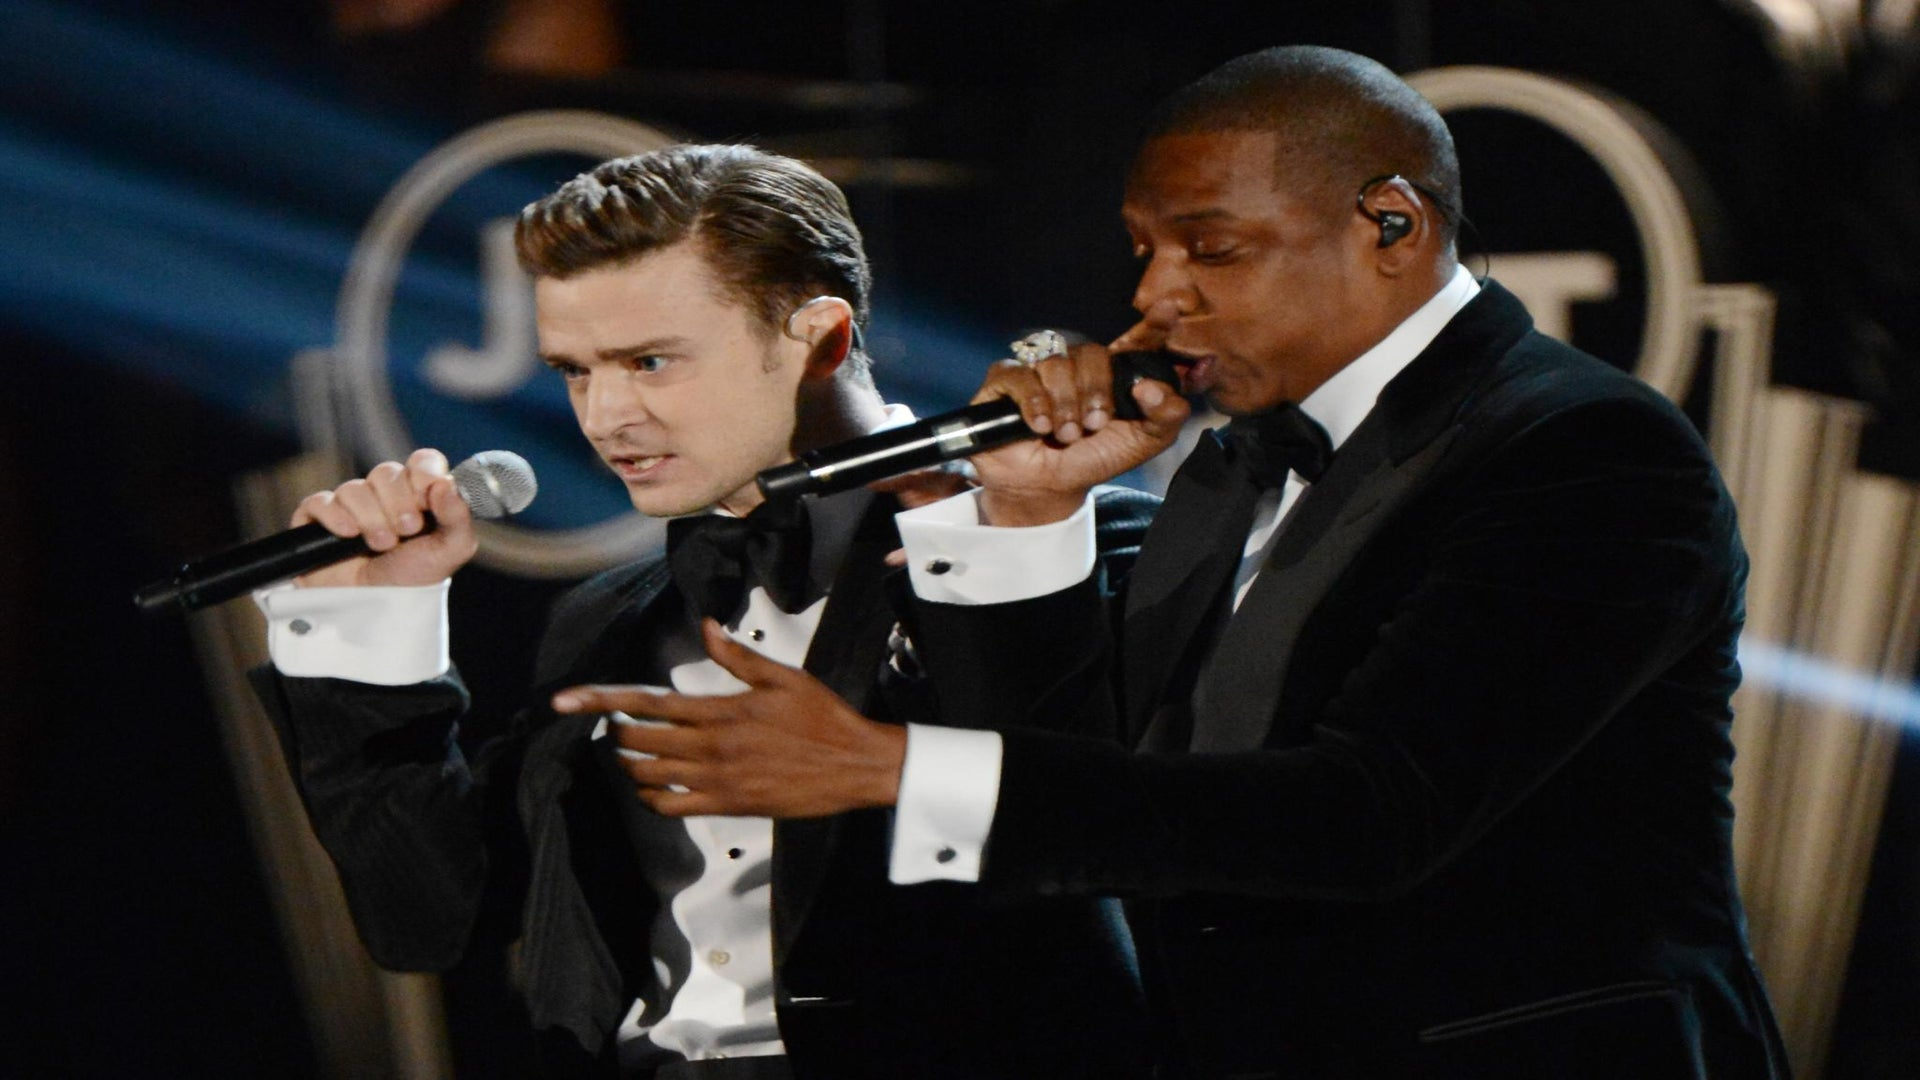 Must-See: Check Out Justin Timberlake's New Video 'Suit & Tie' Featuring Jay-Z